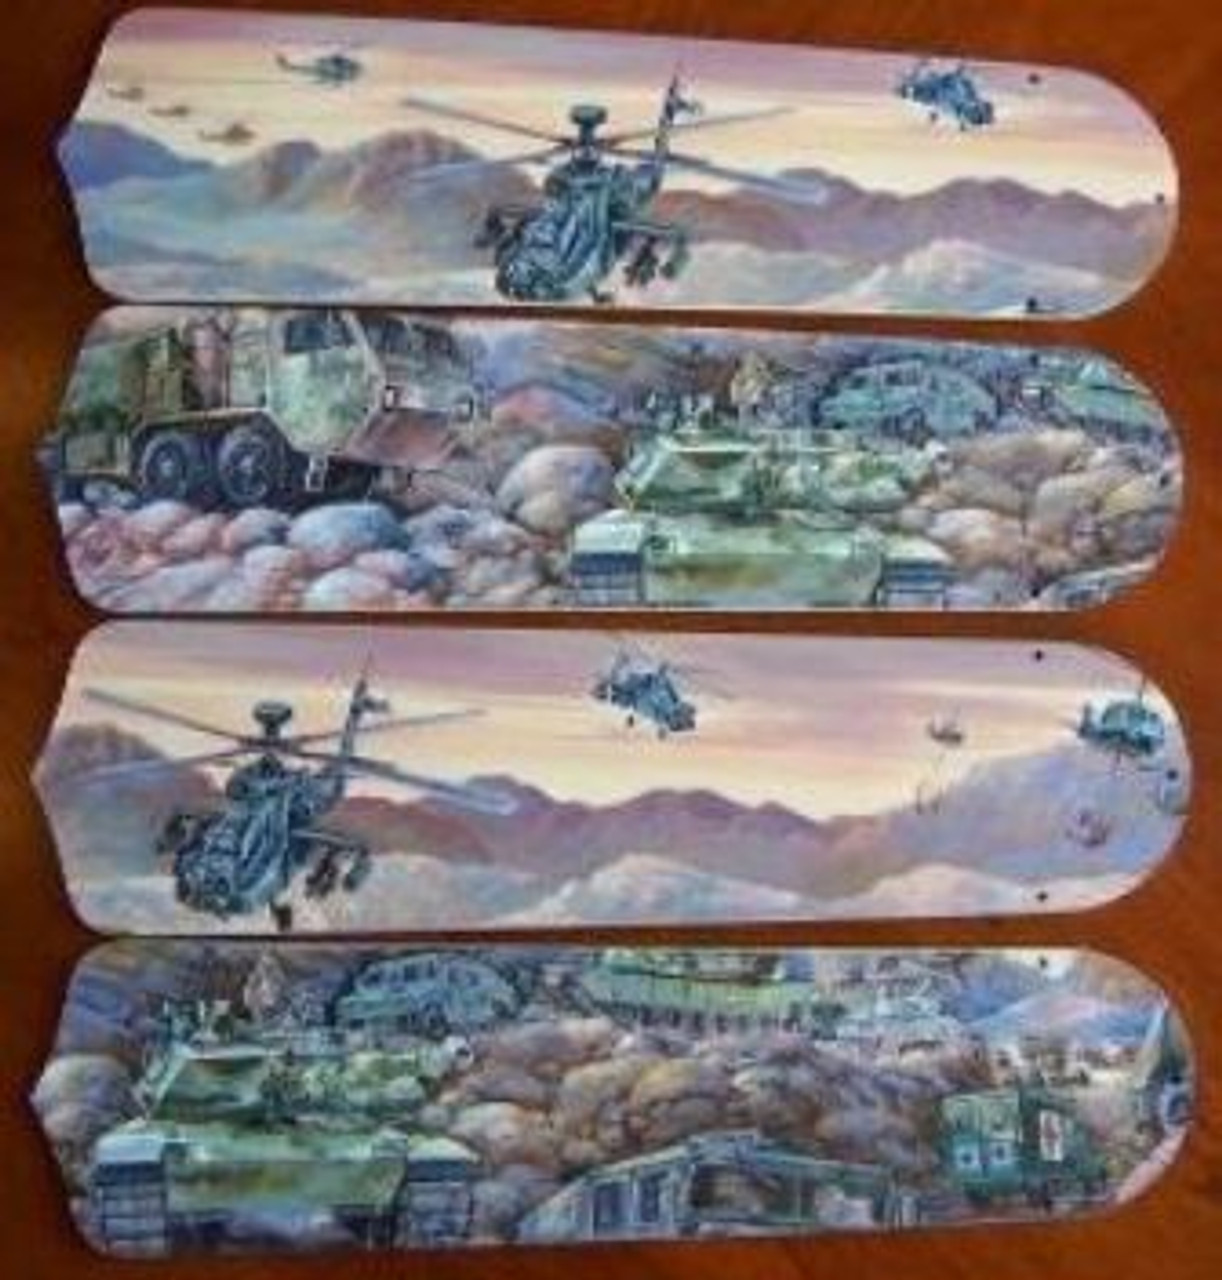 Army Tanks Military Helicopter Ceiling Fan 42 Blades Only Ceiling Fan Blades Kids Room Decor